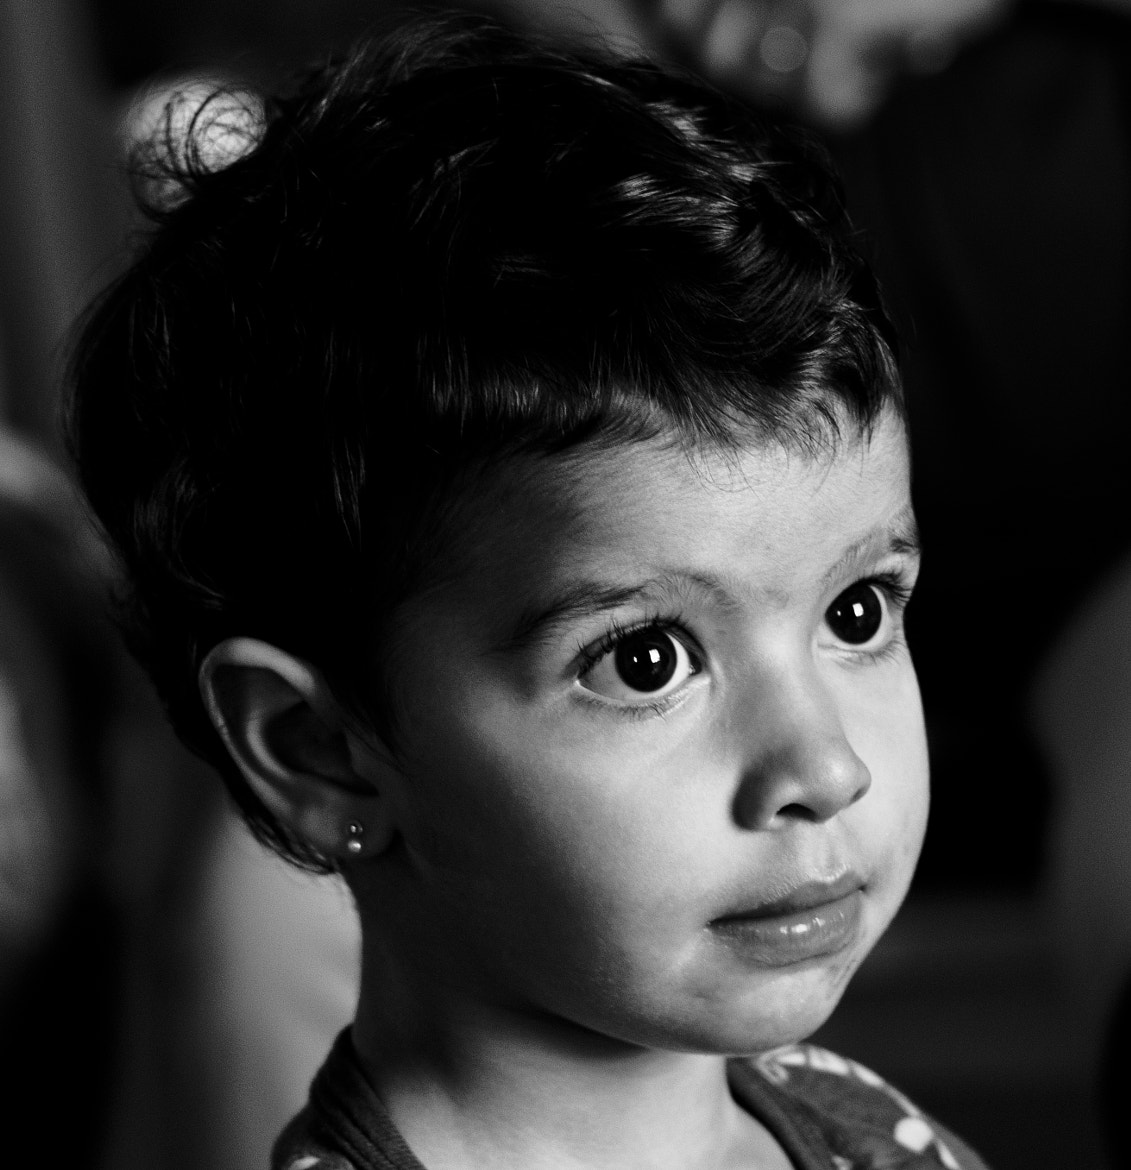 Photograph Always me by Thiago Stabile on 500px